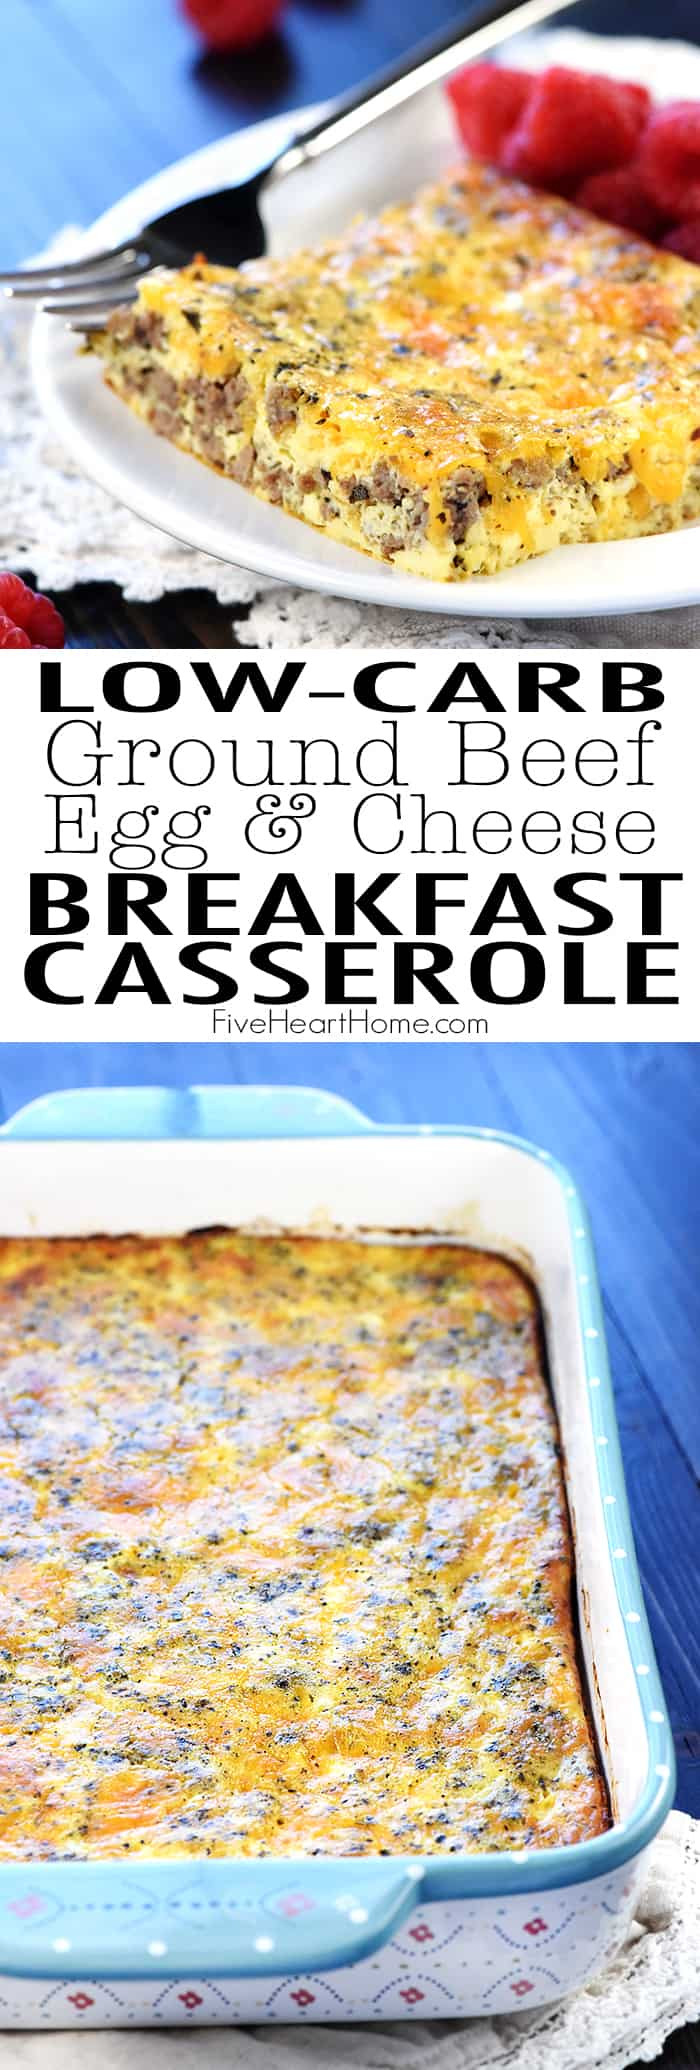 Ground Turkey Casserole Low Carb  Ground Beef Egg & Cheese Breakfast Casserole